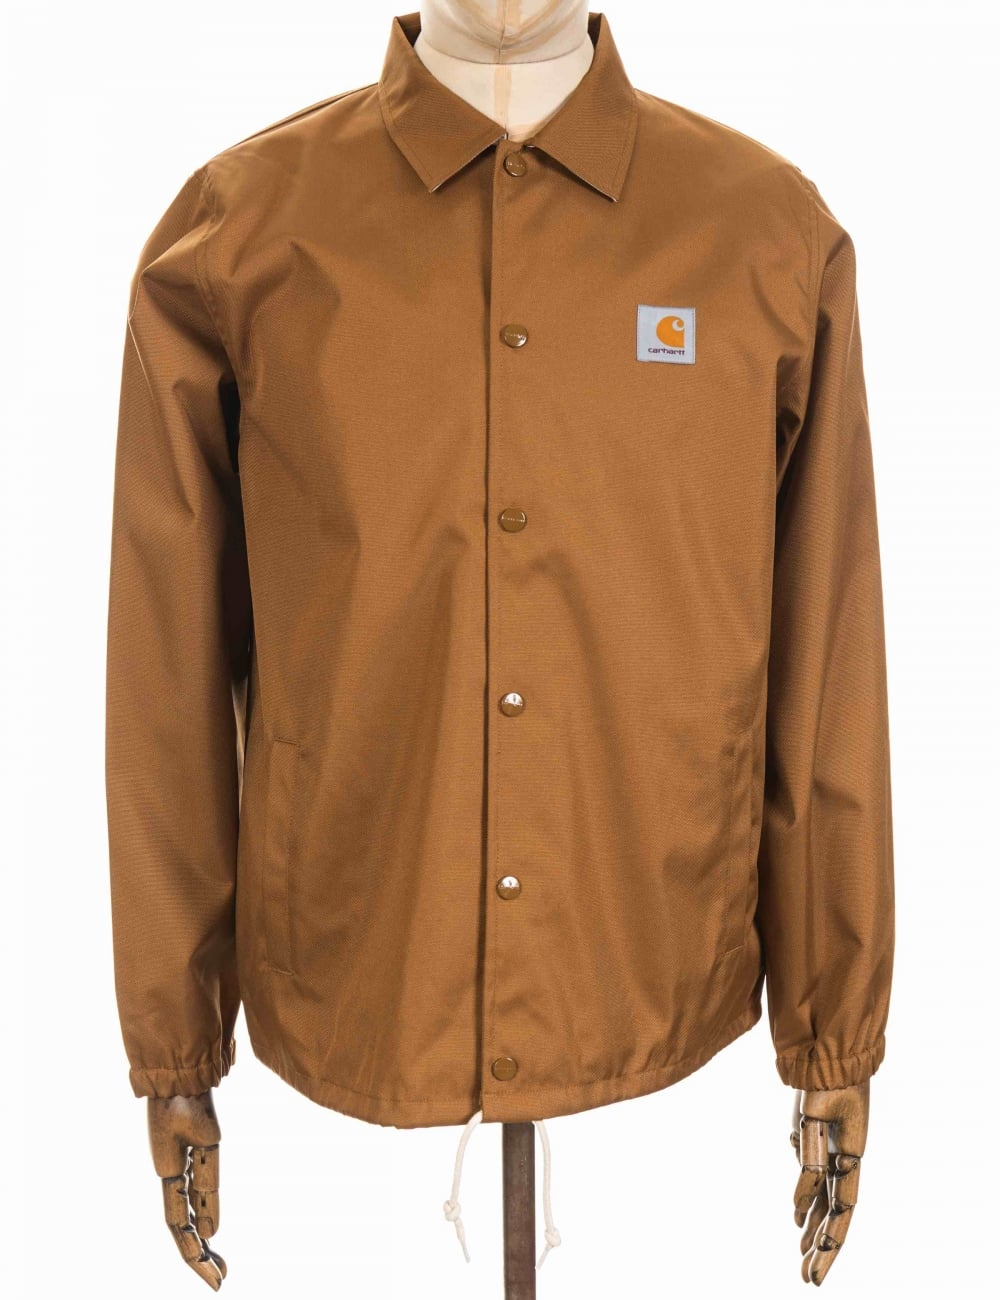 26840309de4 Carhartt WIP Watch Coat Jacket - Hamilton Brown - Clothing from Fat ...